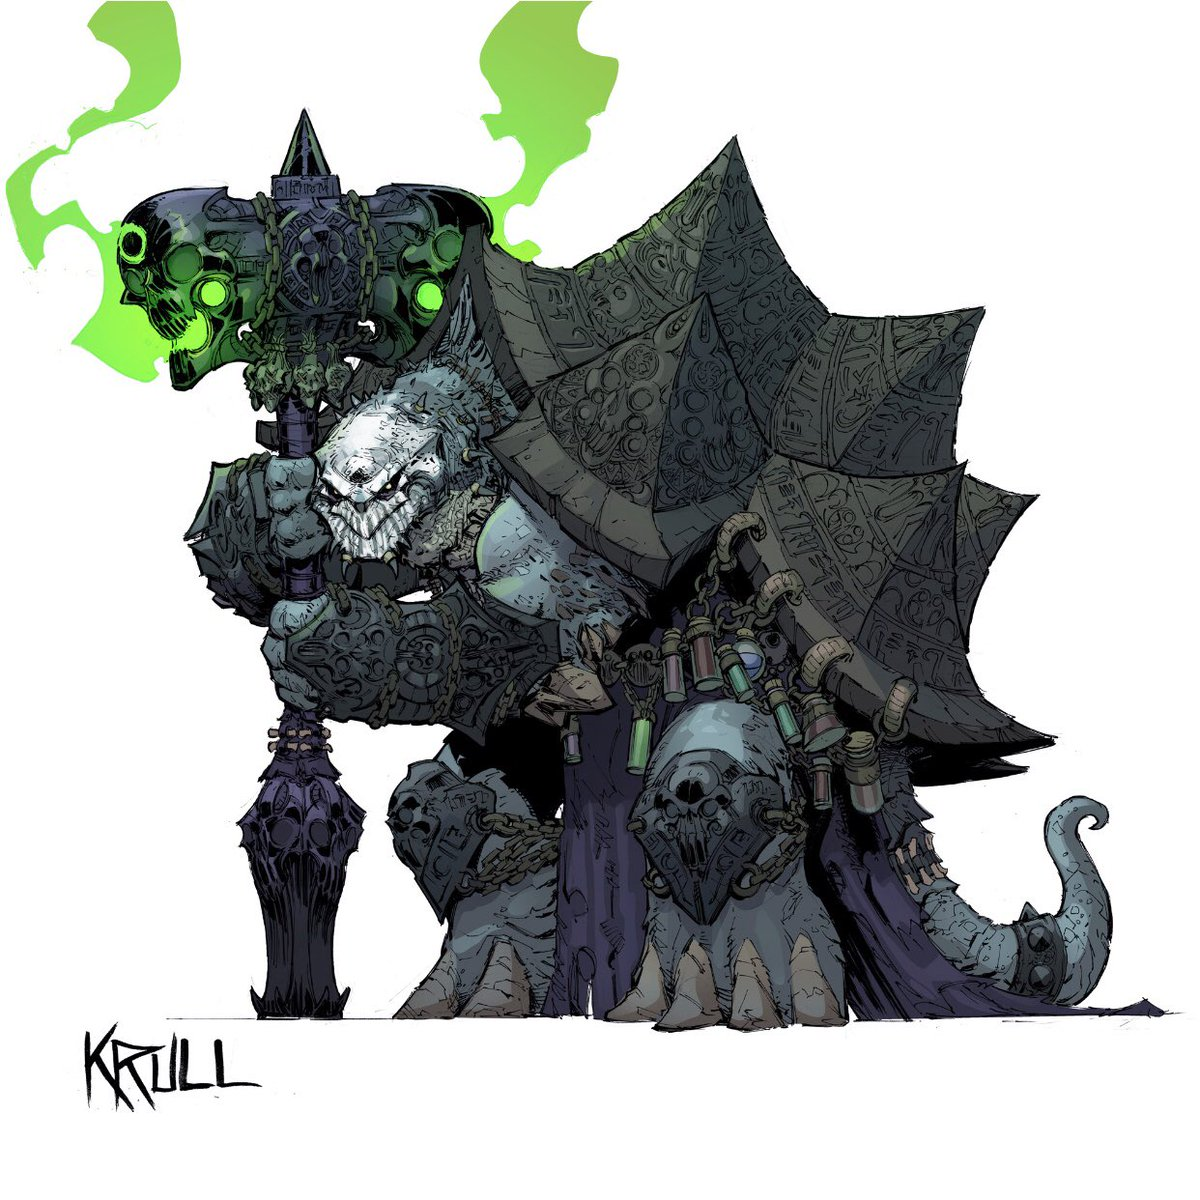 Joe Manganiello On Twitter I Had The Pleasure Of Working With Famed Comic Artist Max Dunbar To Bring Arkhan The Cruel And The Dark Order To Life As A New Set Of Wizkidsgames Soon he'll be a miniature. joe manganiello on twitter i had the